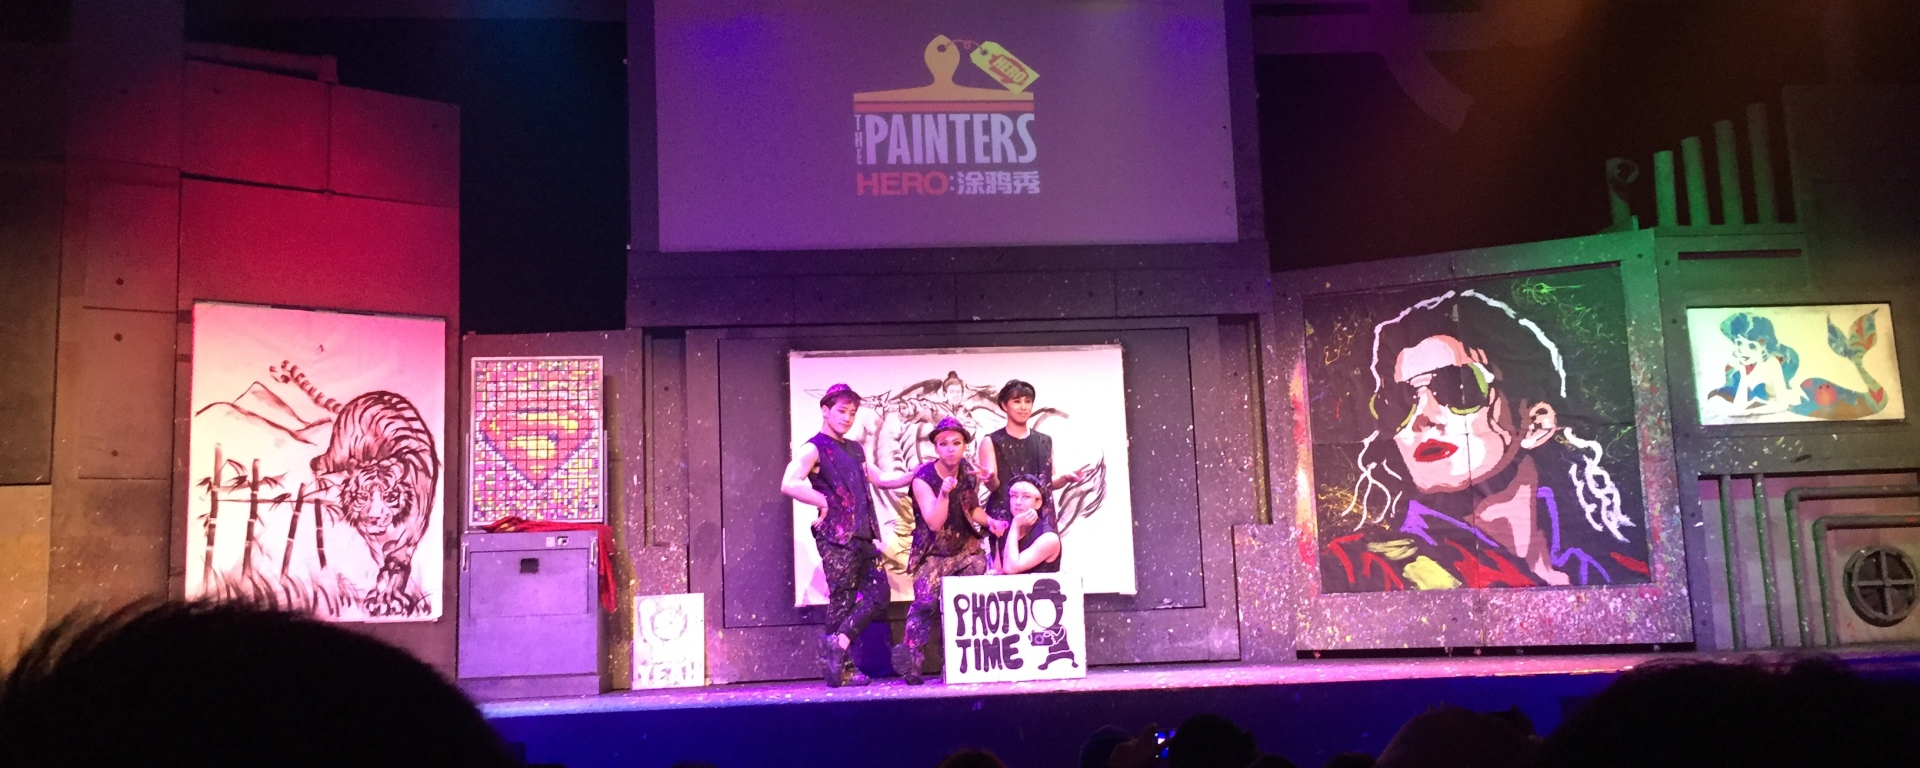 The Painters: Hero In Seoul